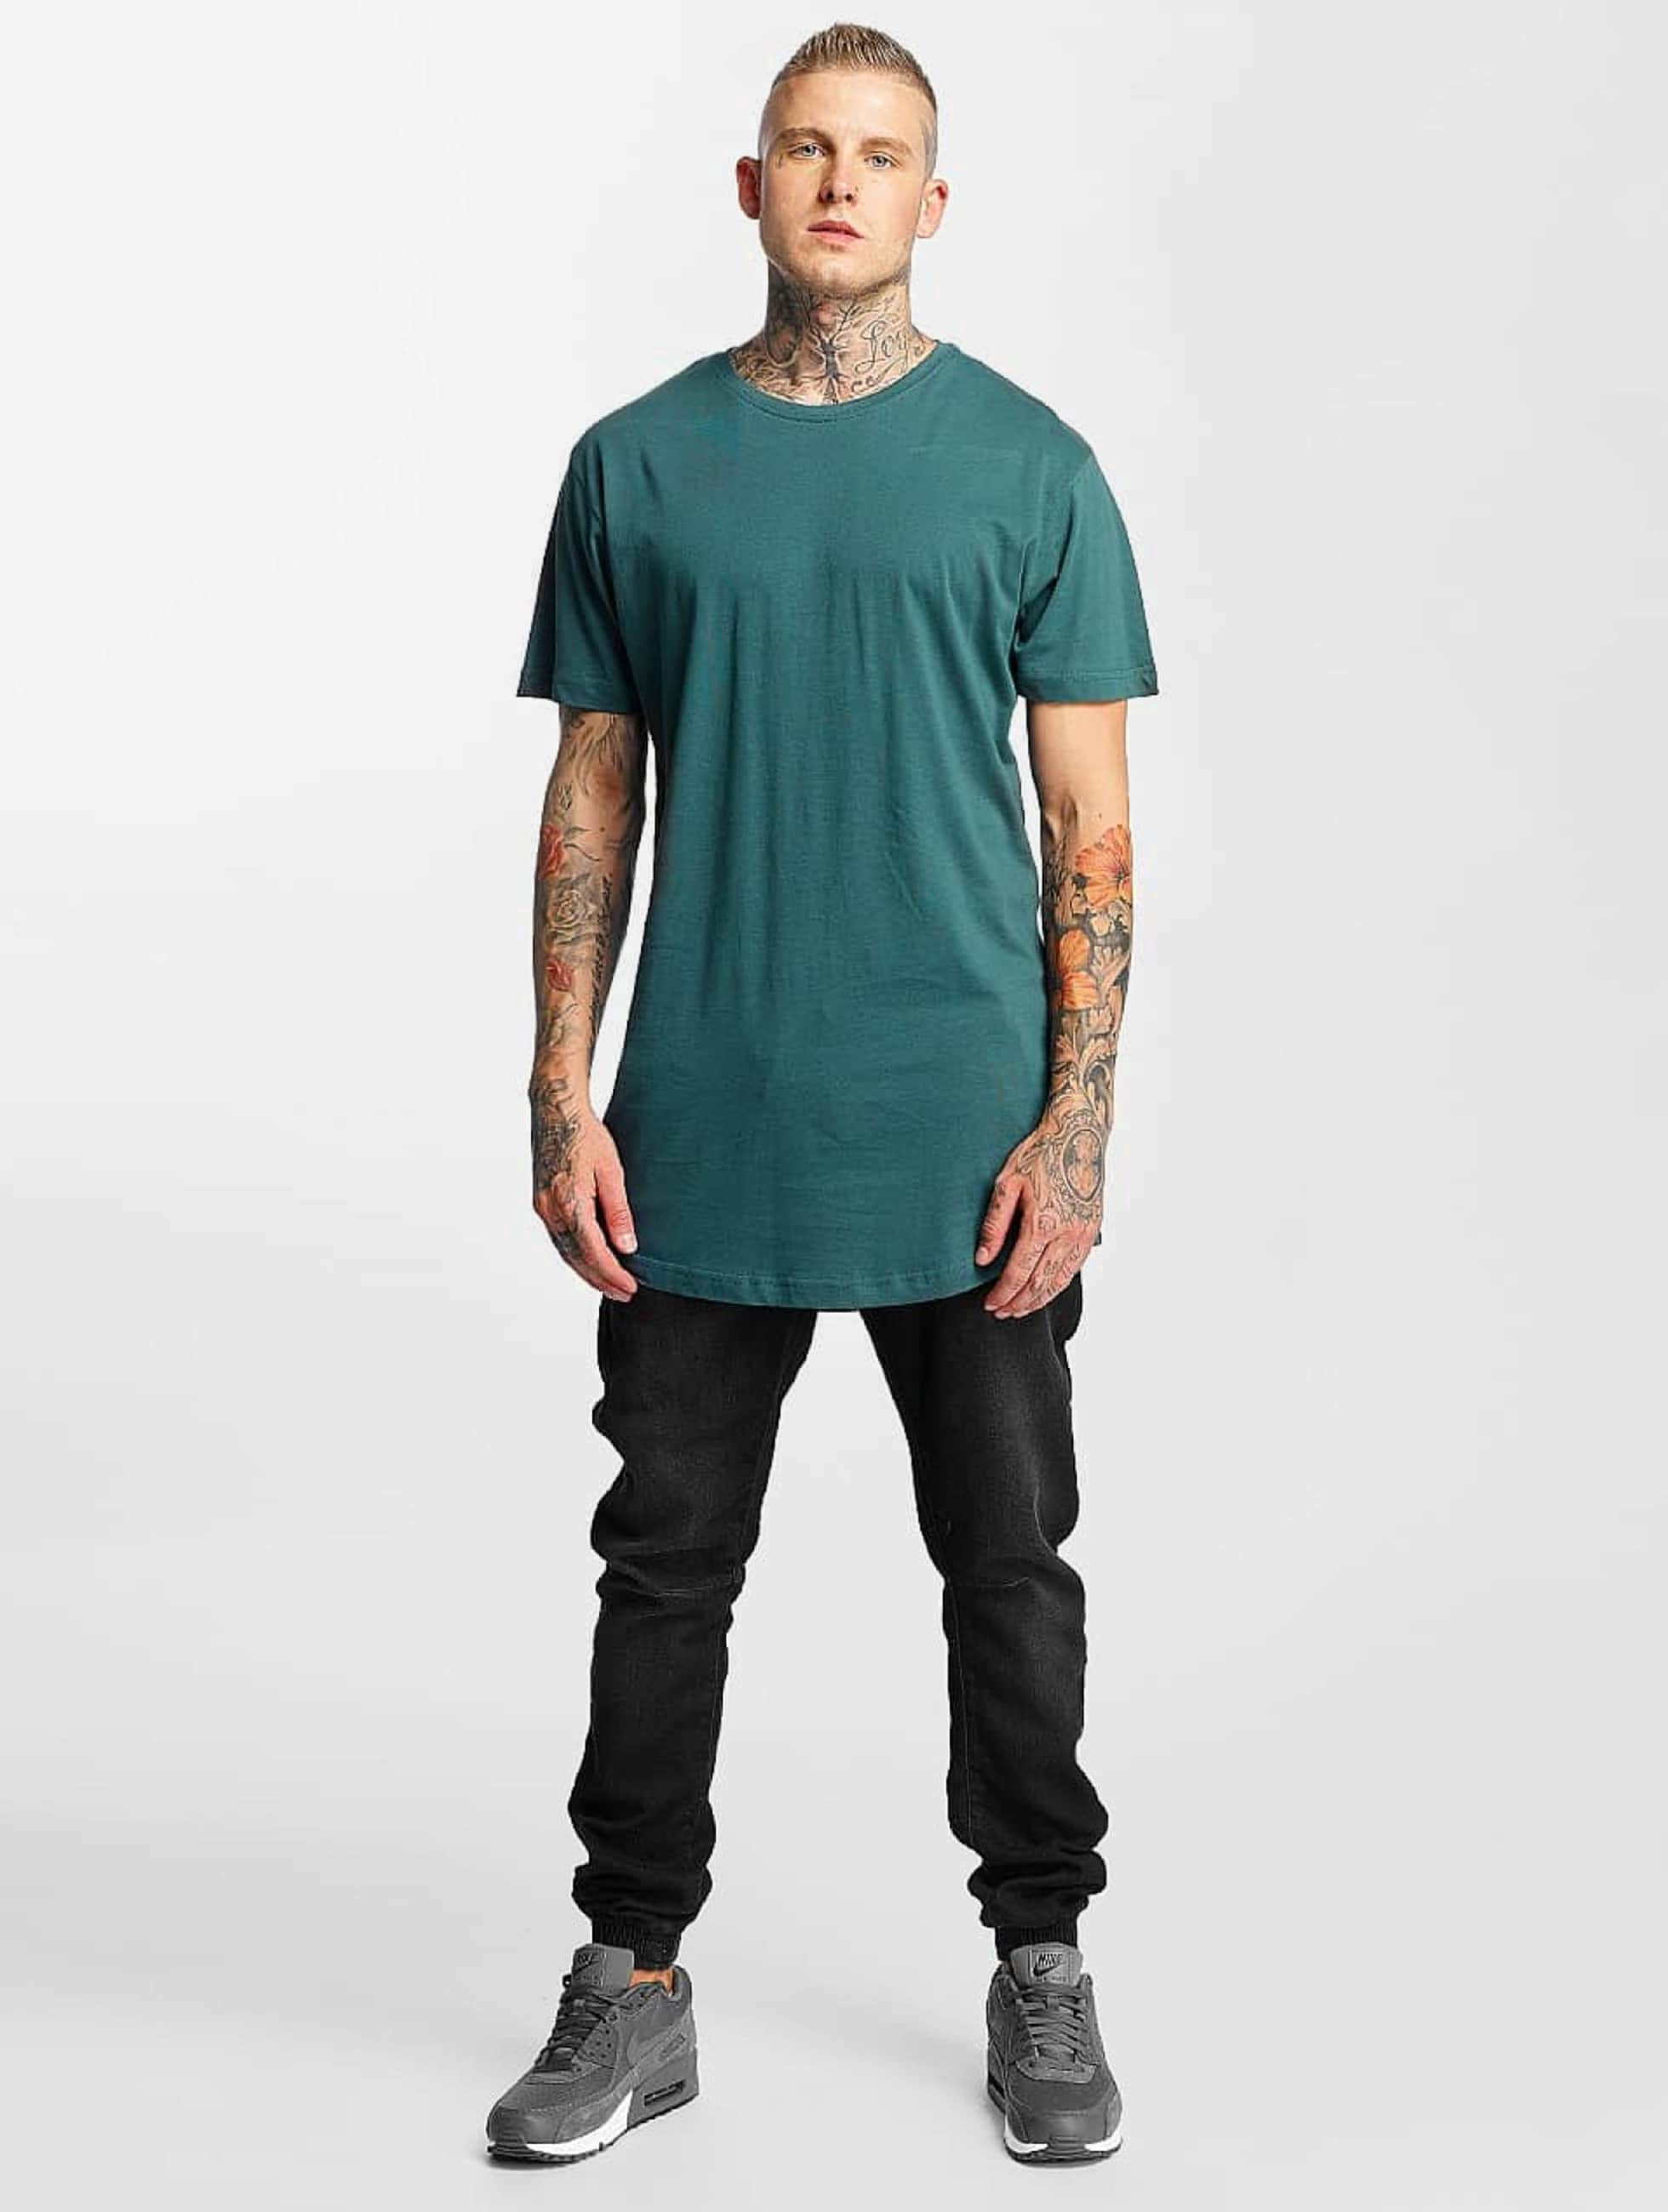 Urban Classics Tall Tees Shaped Long turquoise